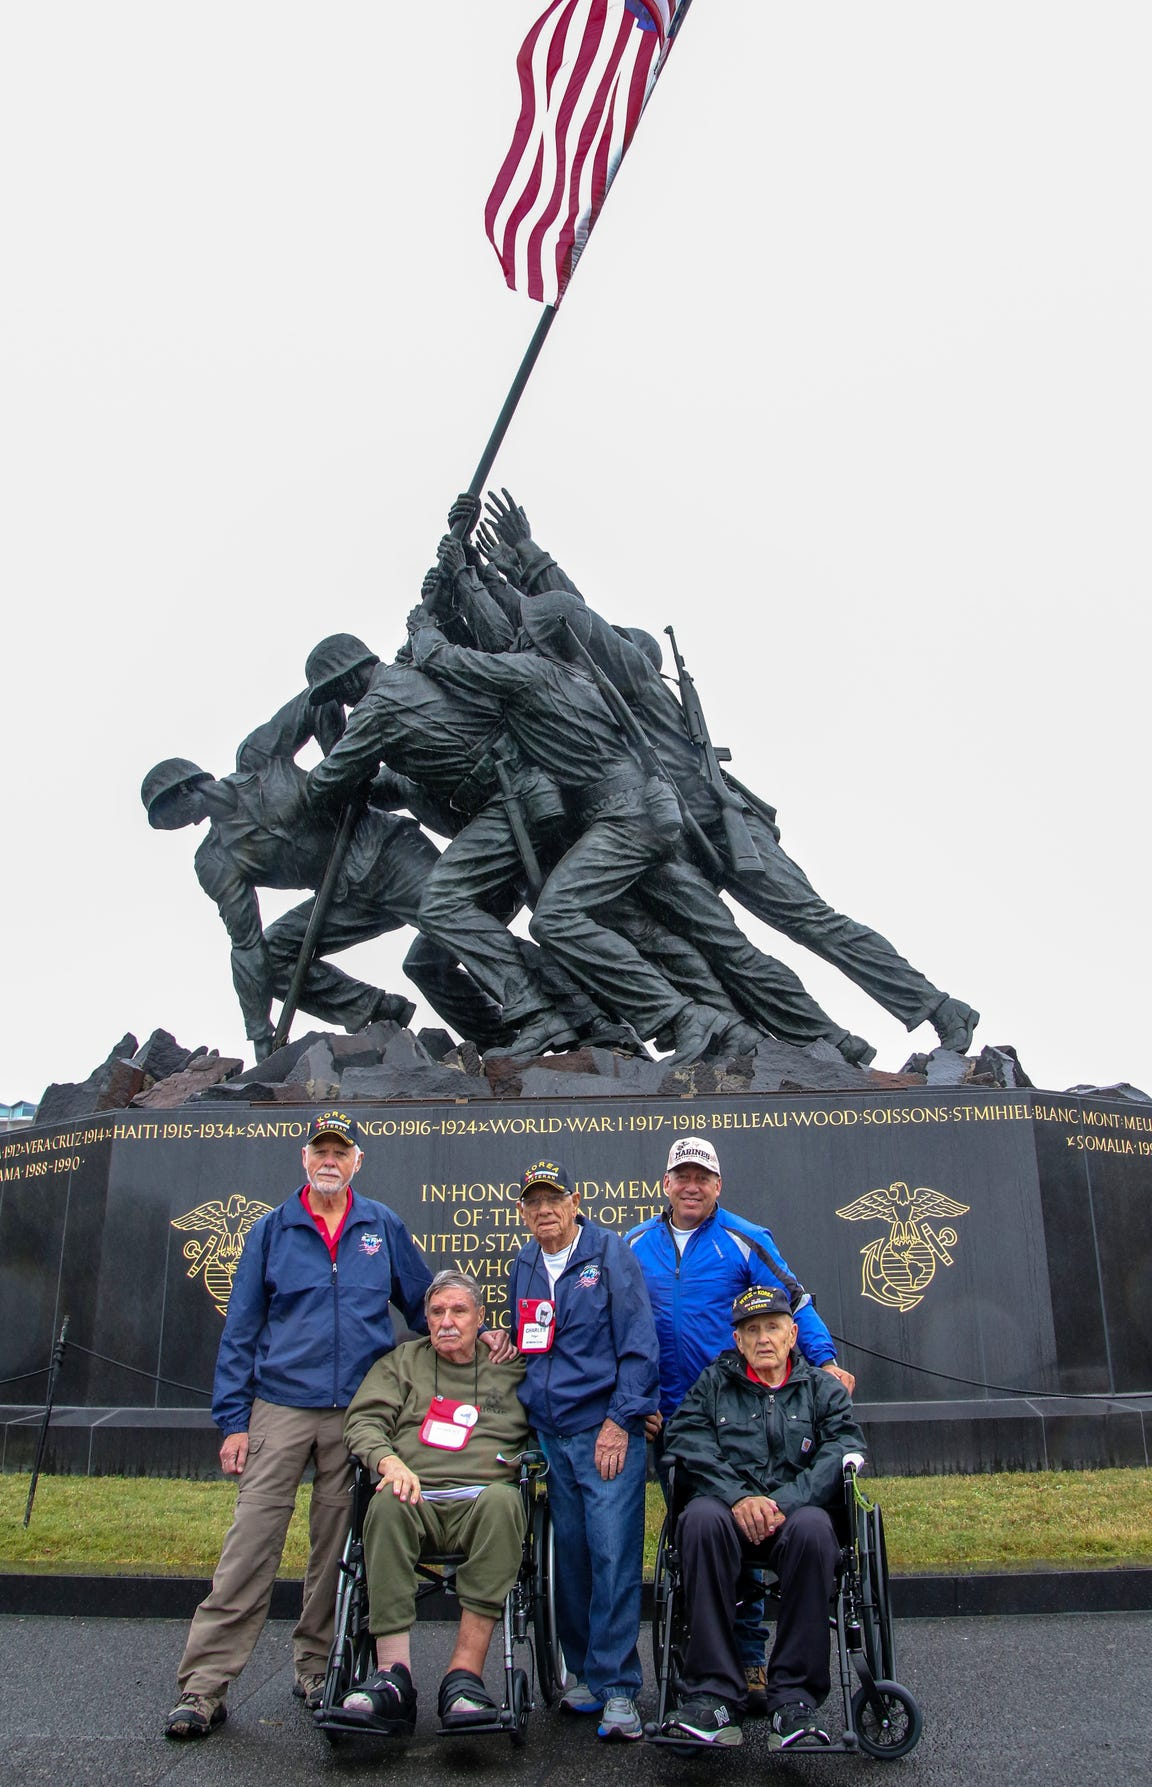 Space Coast Honor Flight veterans pose at the U.S. Marine Corps War Memorial on Oct. 27 in Washington, D.C.